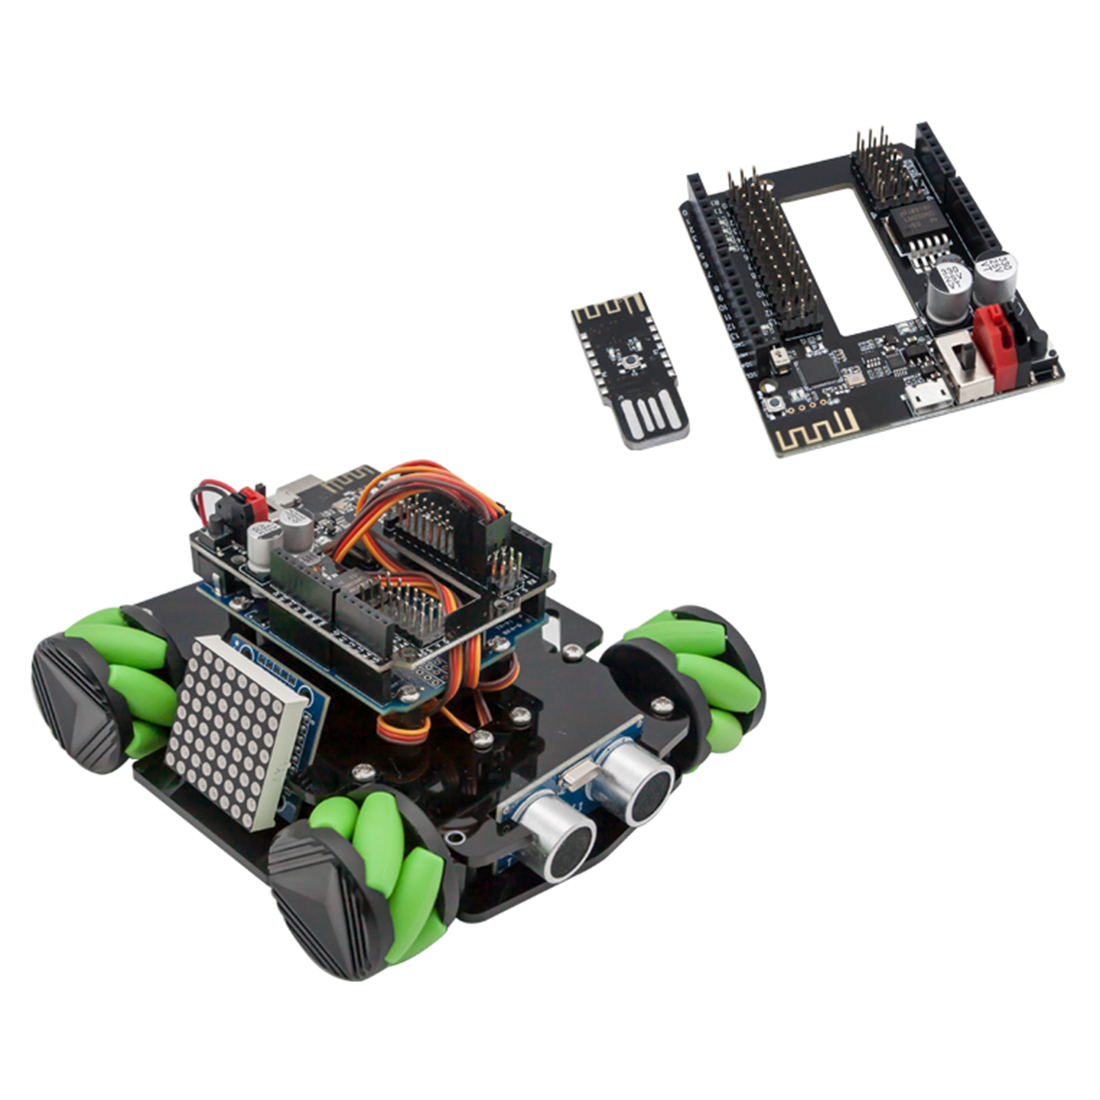 DIY Obstacle Avoidance Smart Programmable Robot Car Educational Learning Kit With Mecanum Wheels For Arduino UNO - 4 Sets